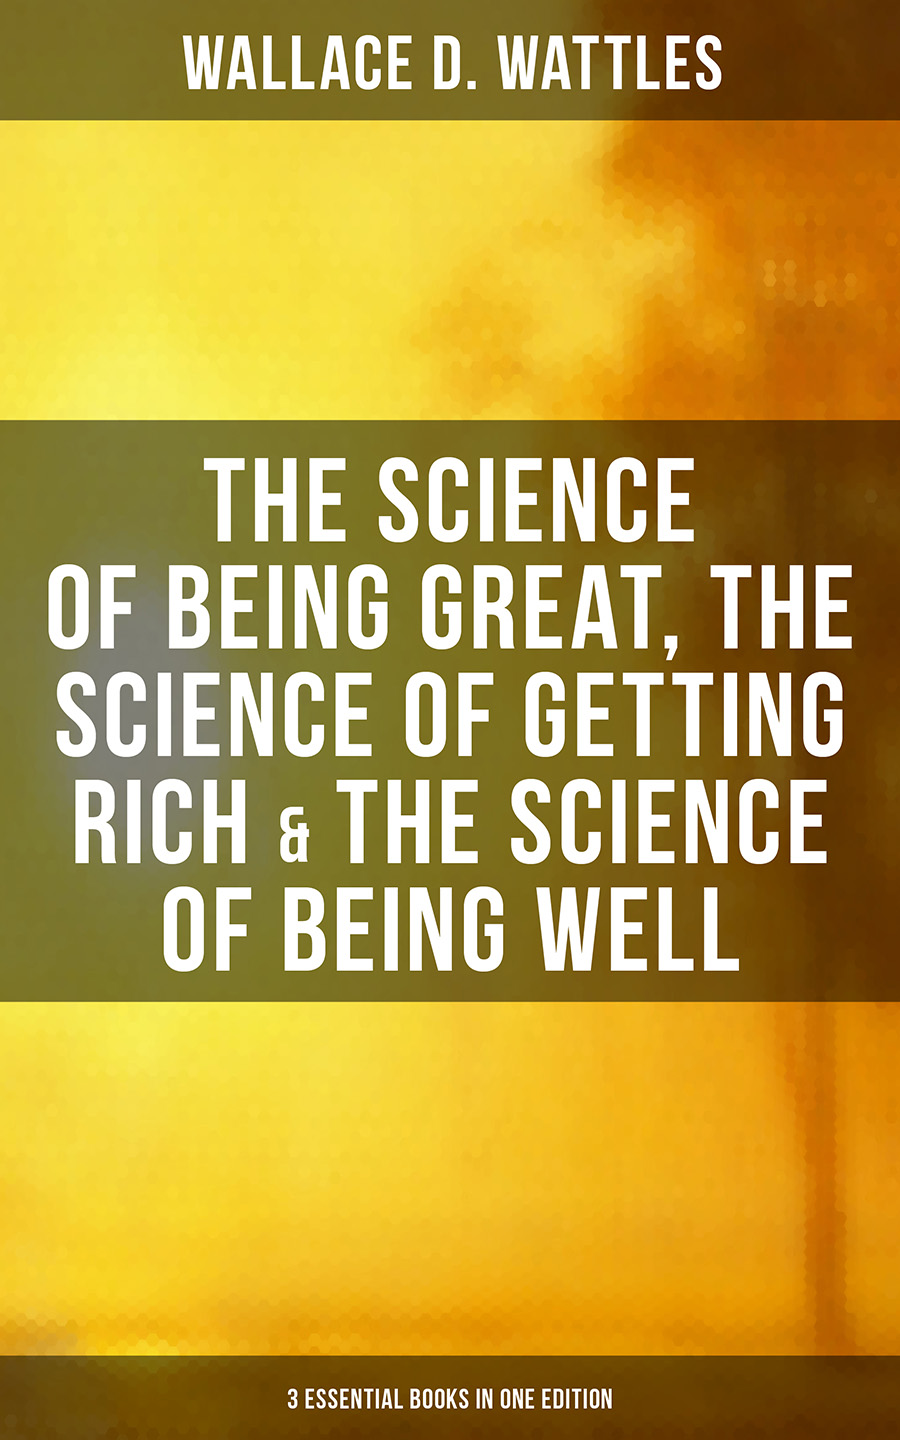 Wallace D. Wattles Wallace D. Wattles: The Science of Being Great, Science of Getting Rich & Science of Being Well d woodhouse woodhouse computer science 2ed paper only